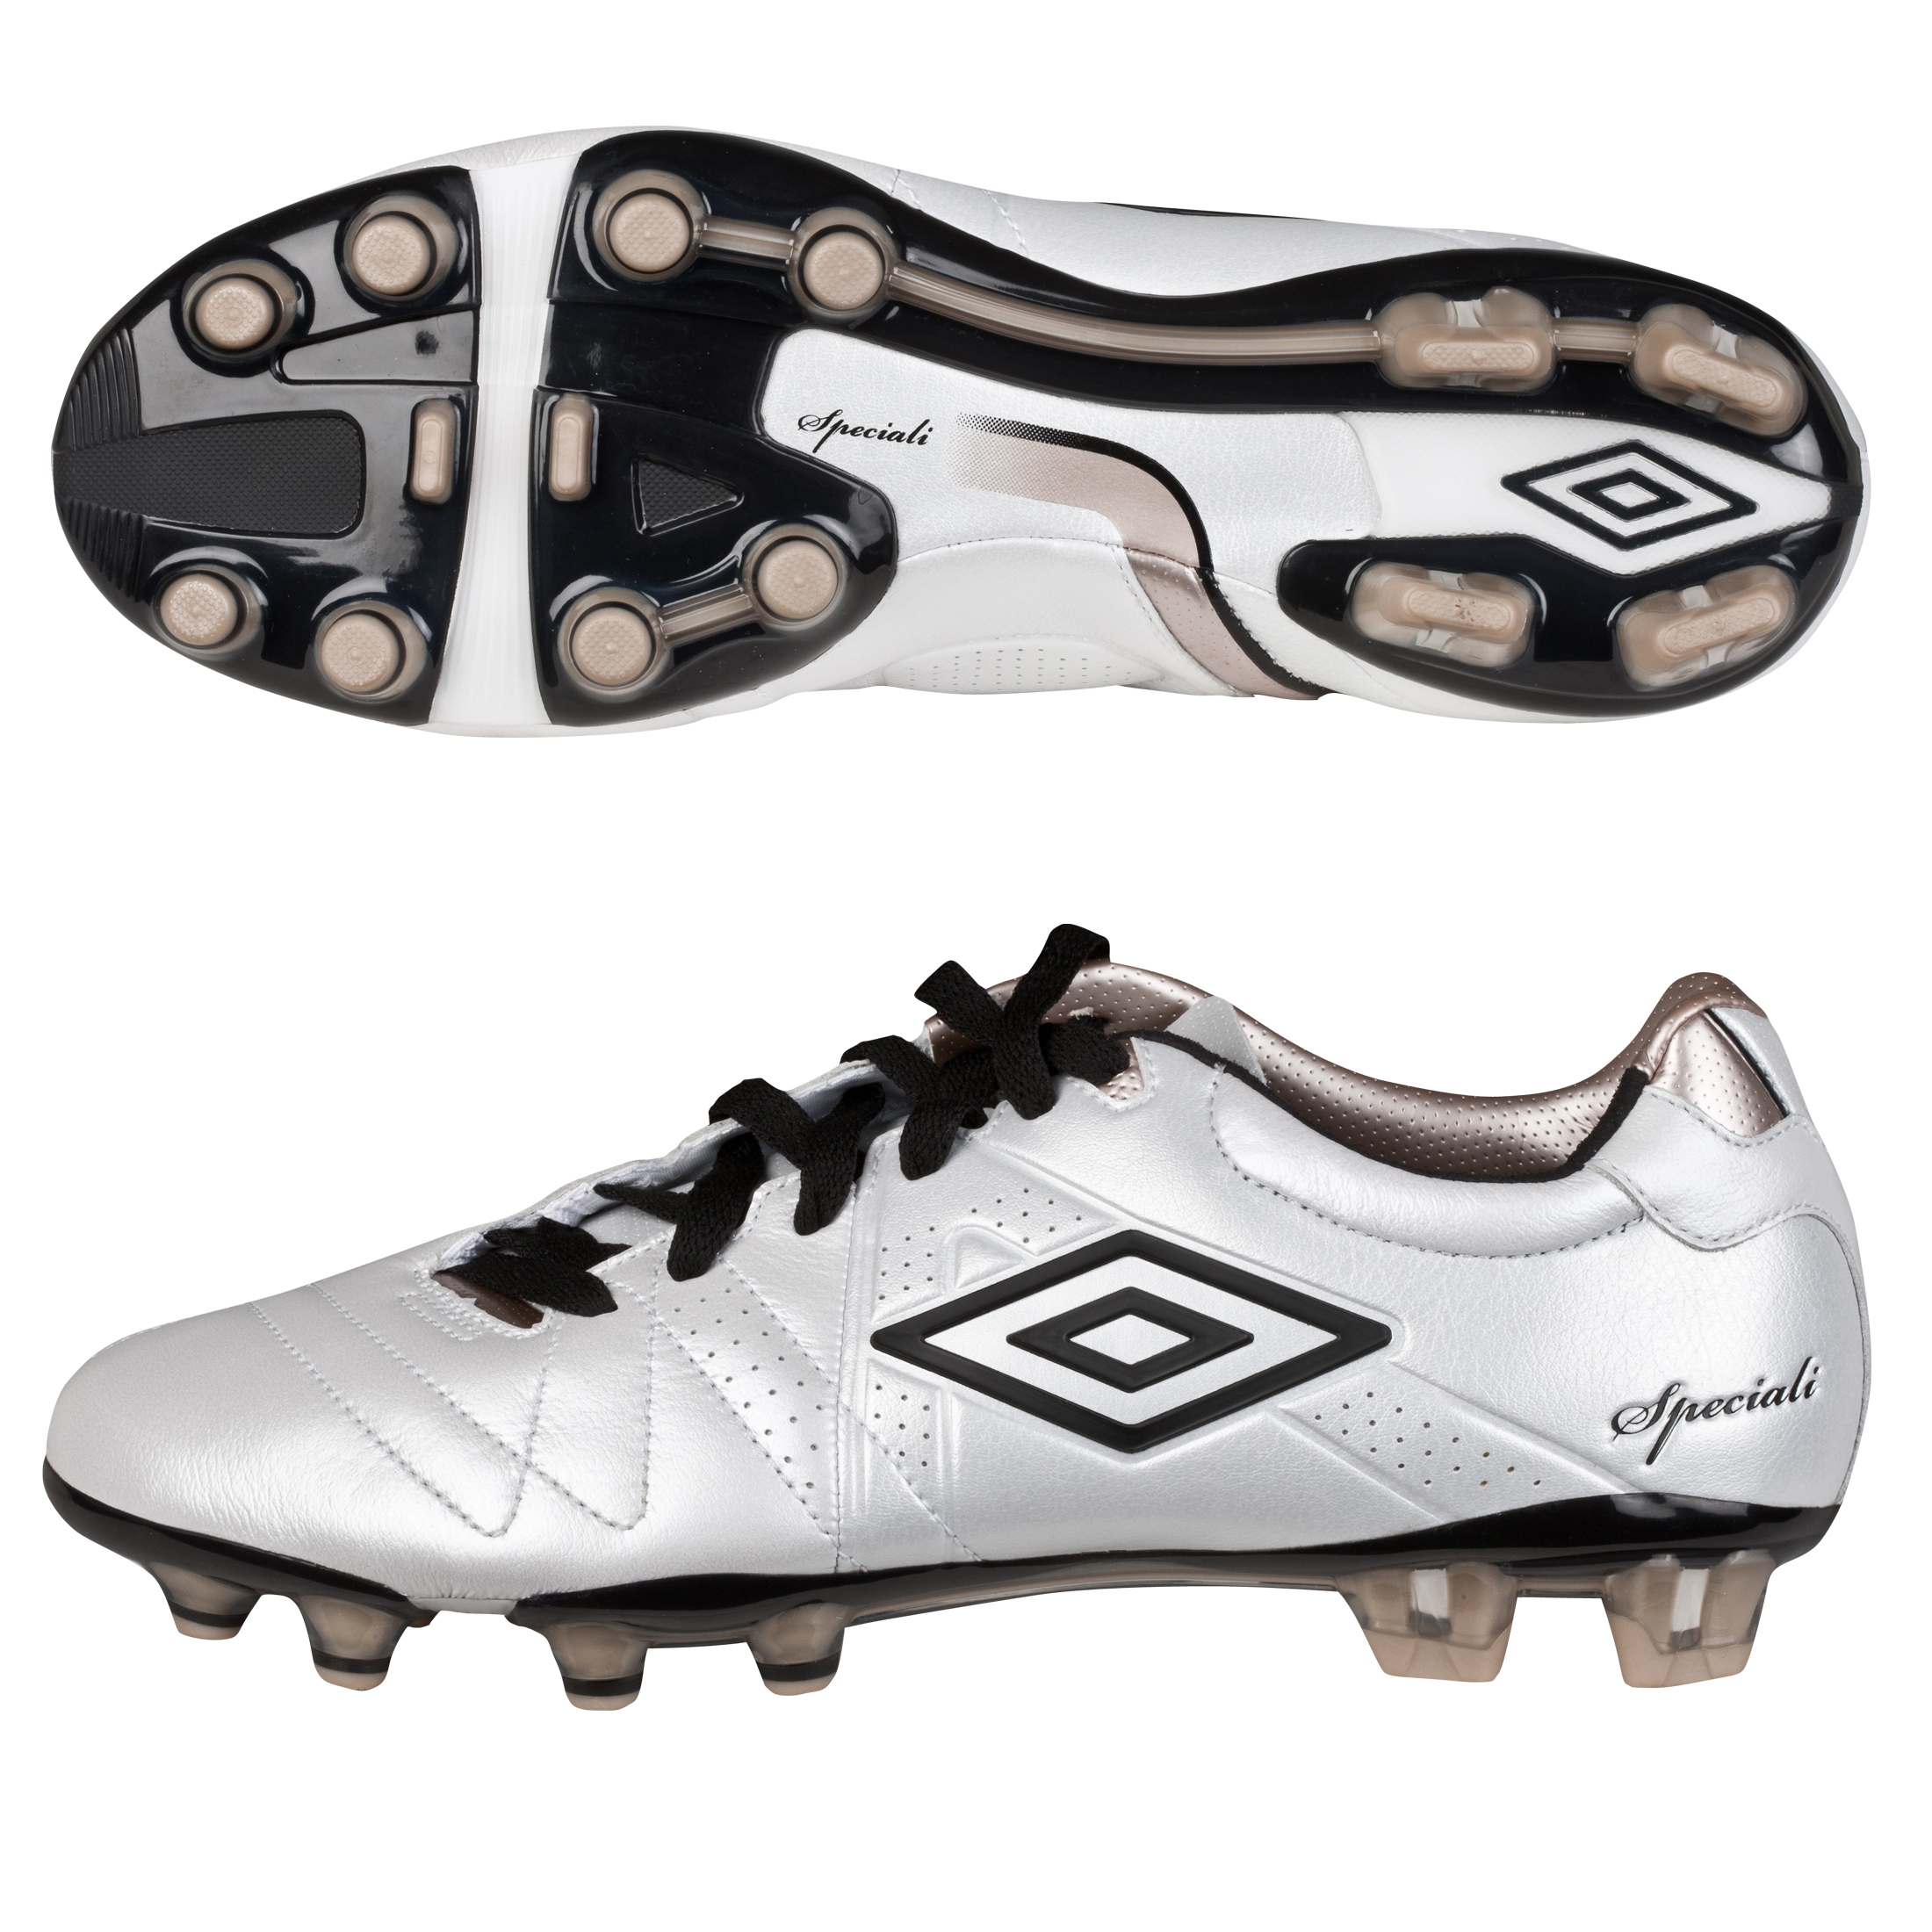 Speciali 3 Pro HG Pearlised White/Black/Pewter